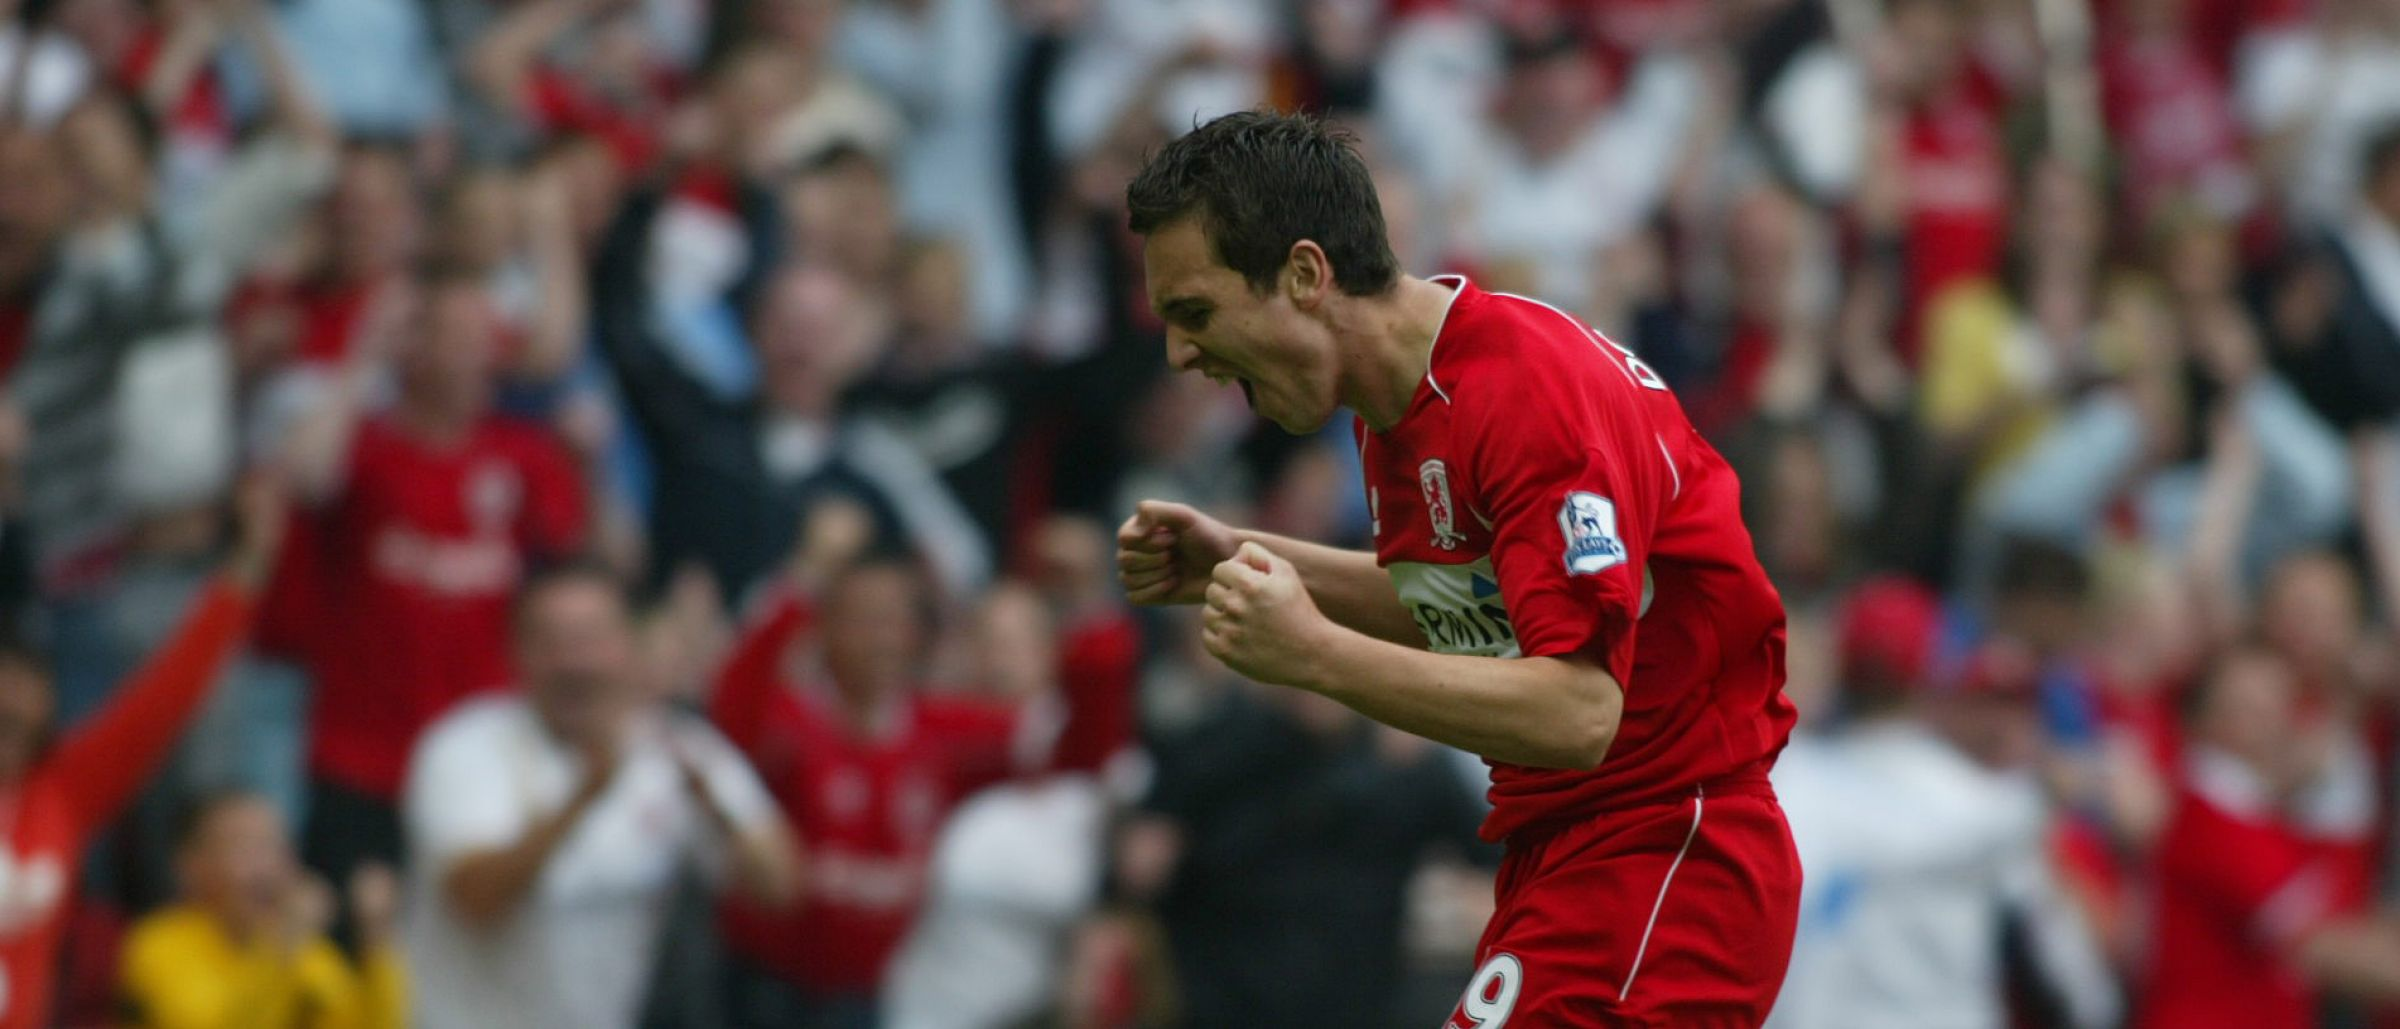 Stewart Downing celebrates scoring against Manchester City